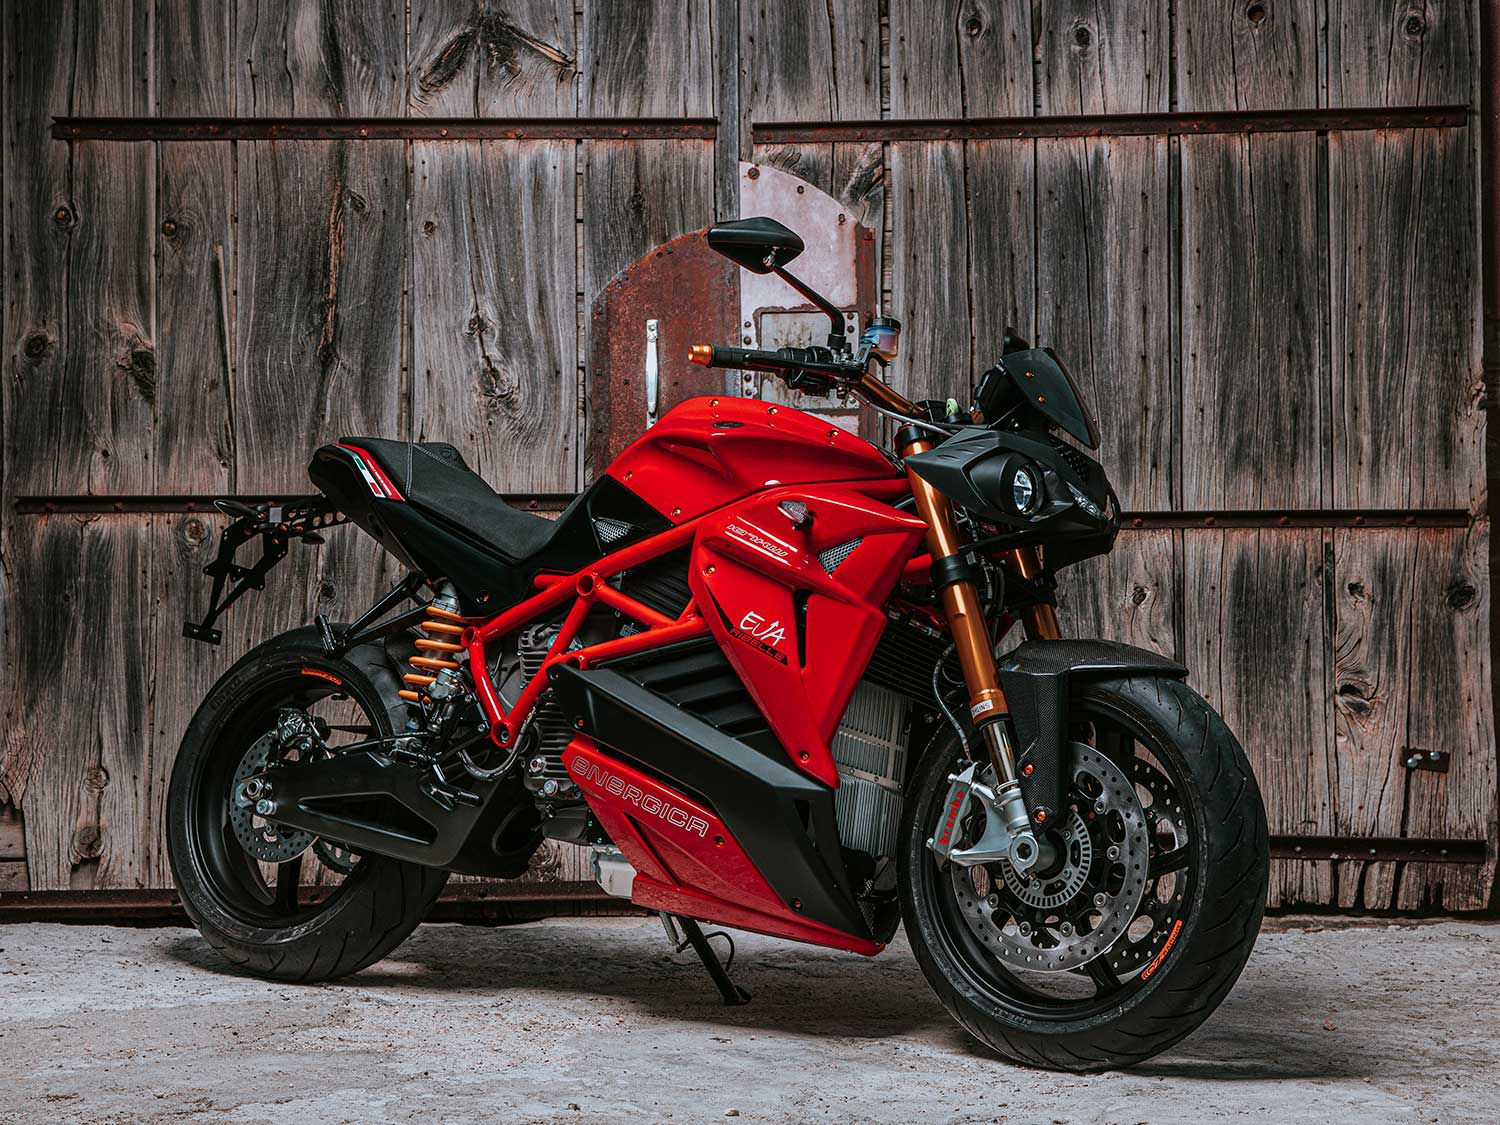 Energica says its motorcycles are now available for sale in nine US states.